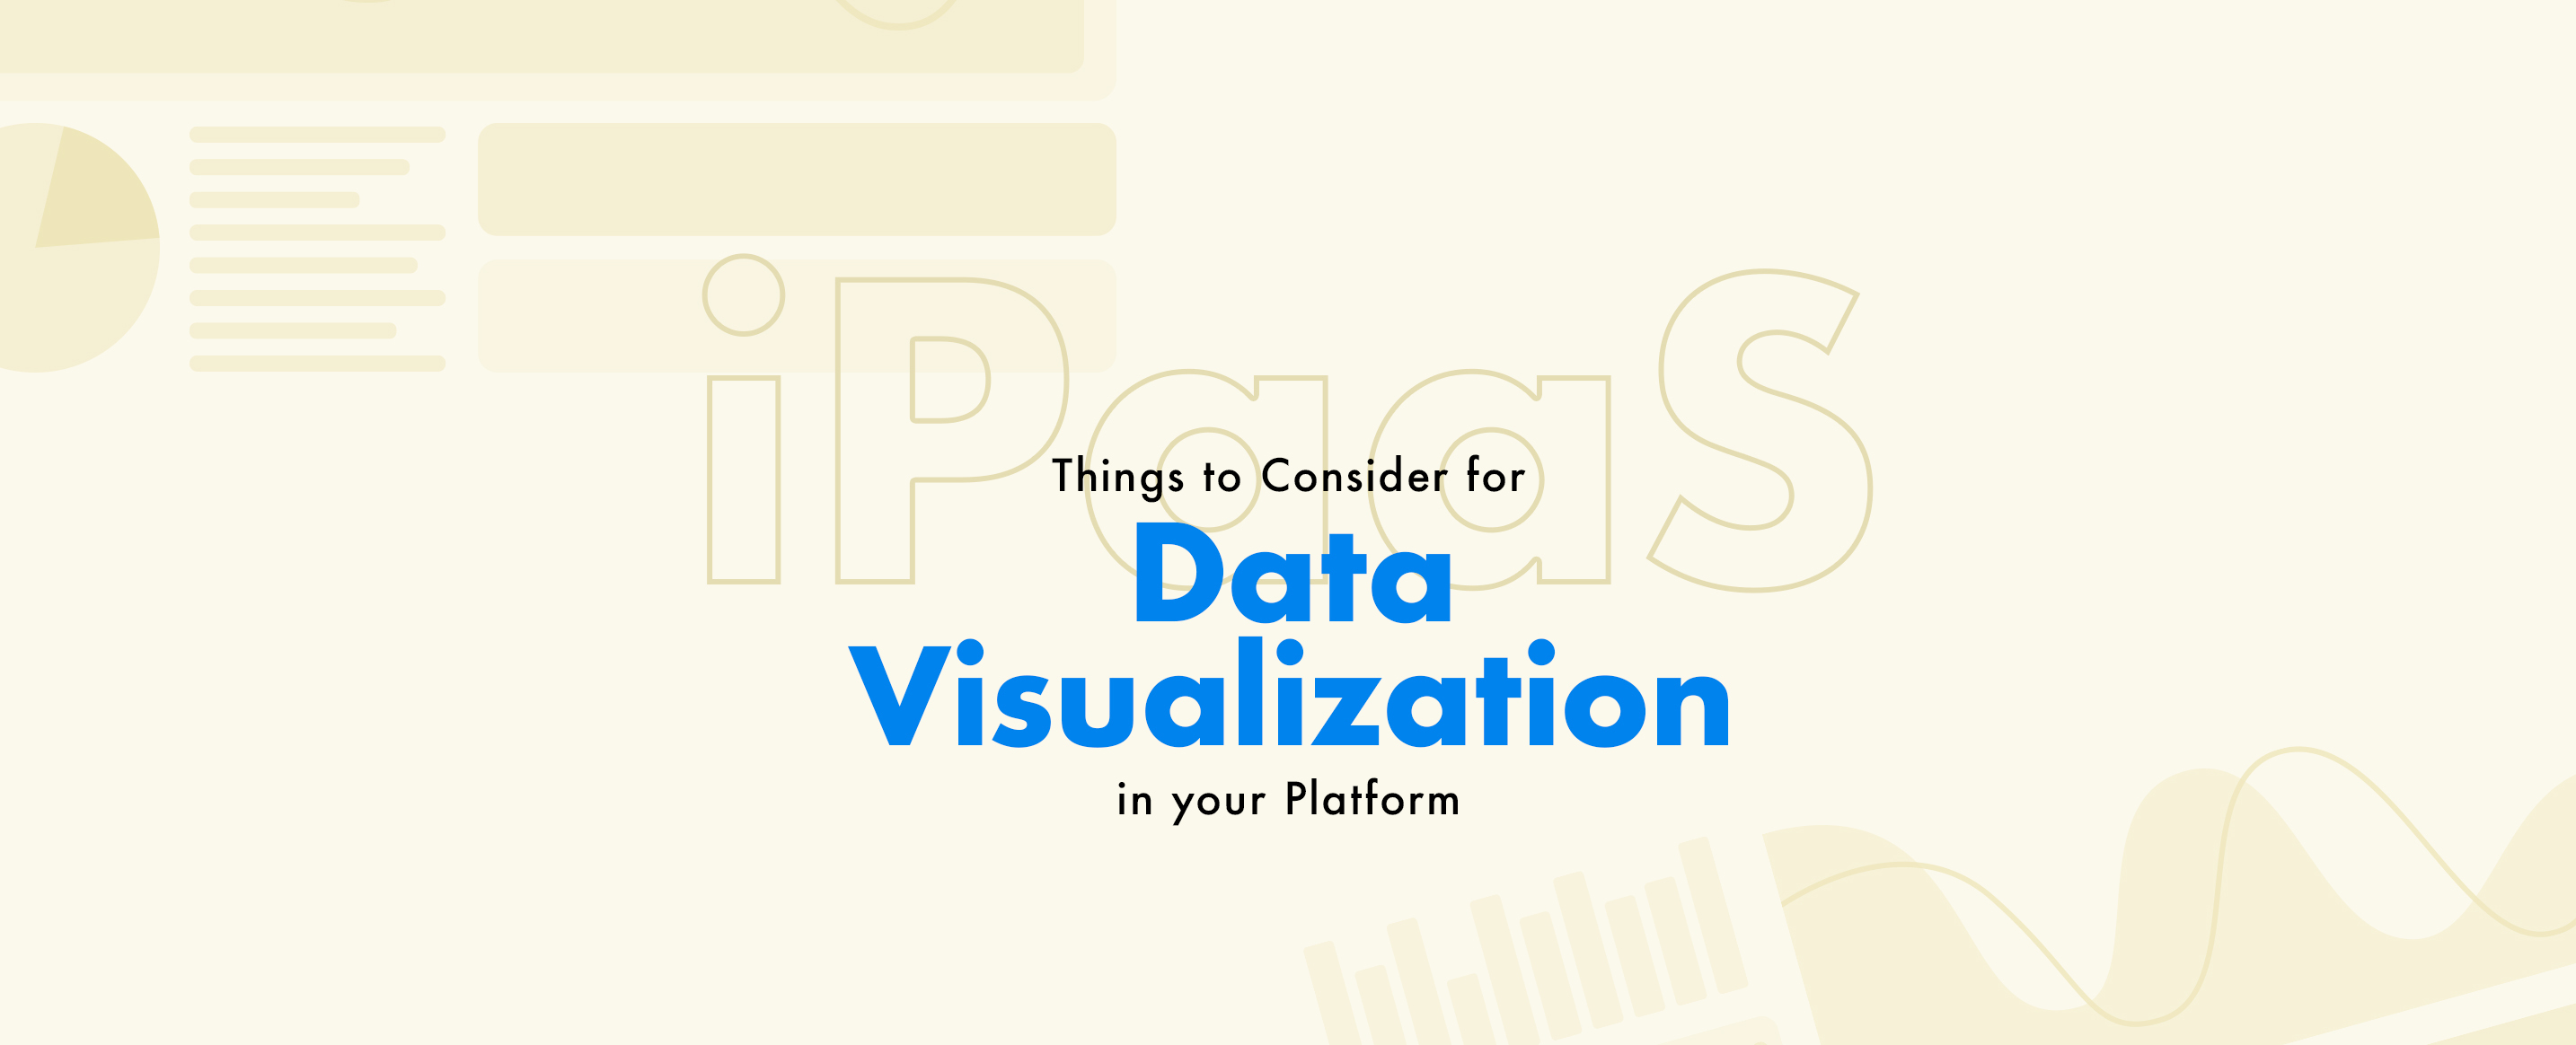 iPaaS--Things-to-Consider-for-Data-Visualization-in-your-Platform